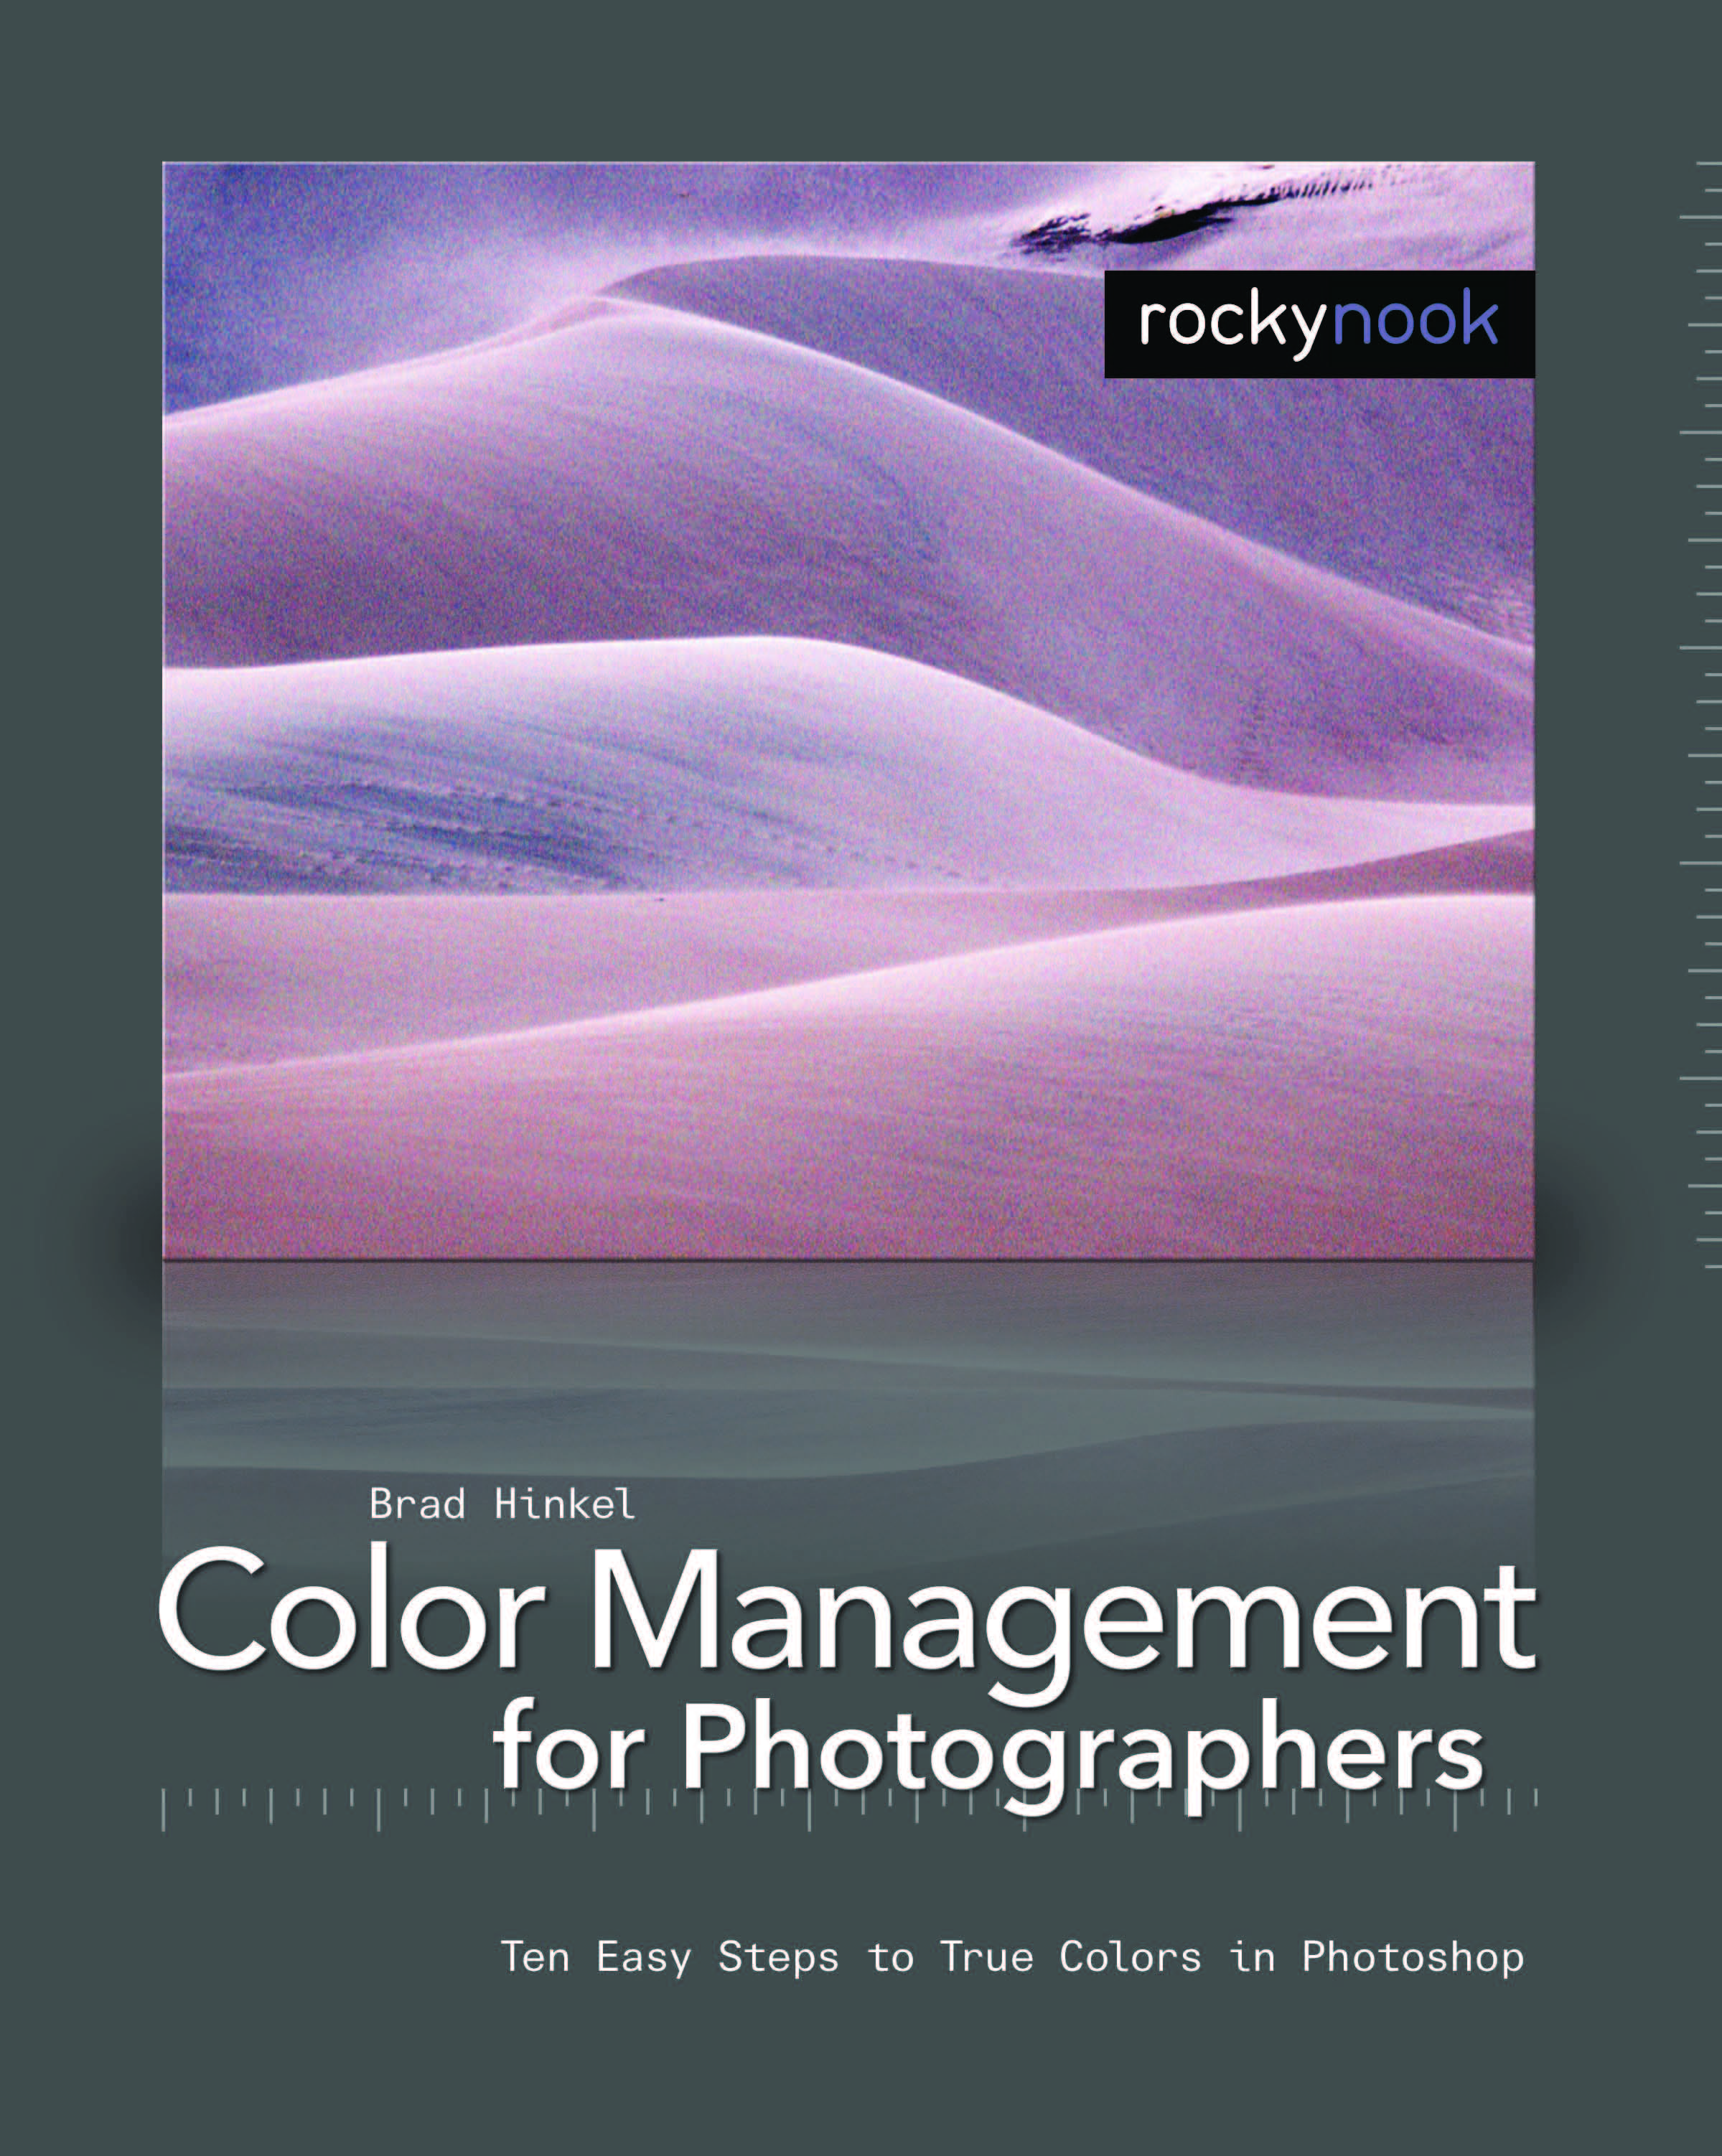 Brad Hinkel Explains How To Set Up A Work Space For Editing And Printing Color Photos In This Excerpt From His Rocky Nook Book Management